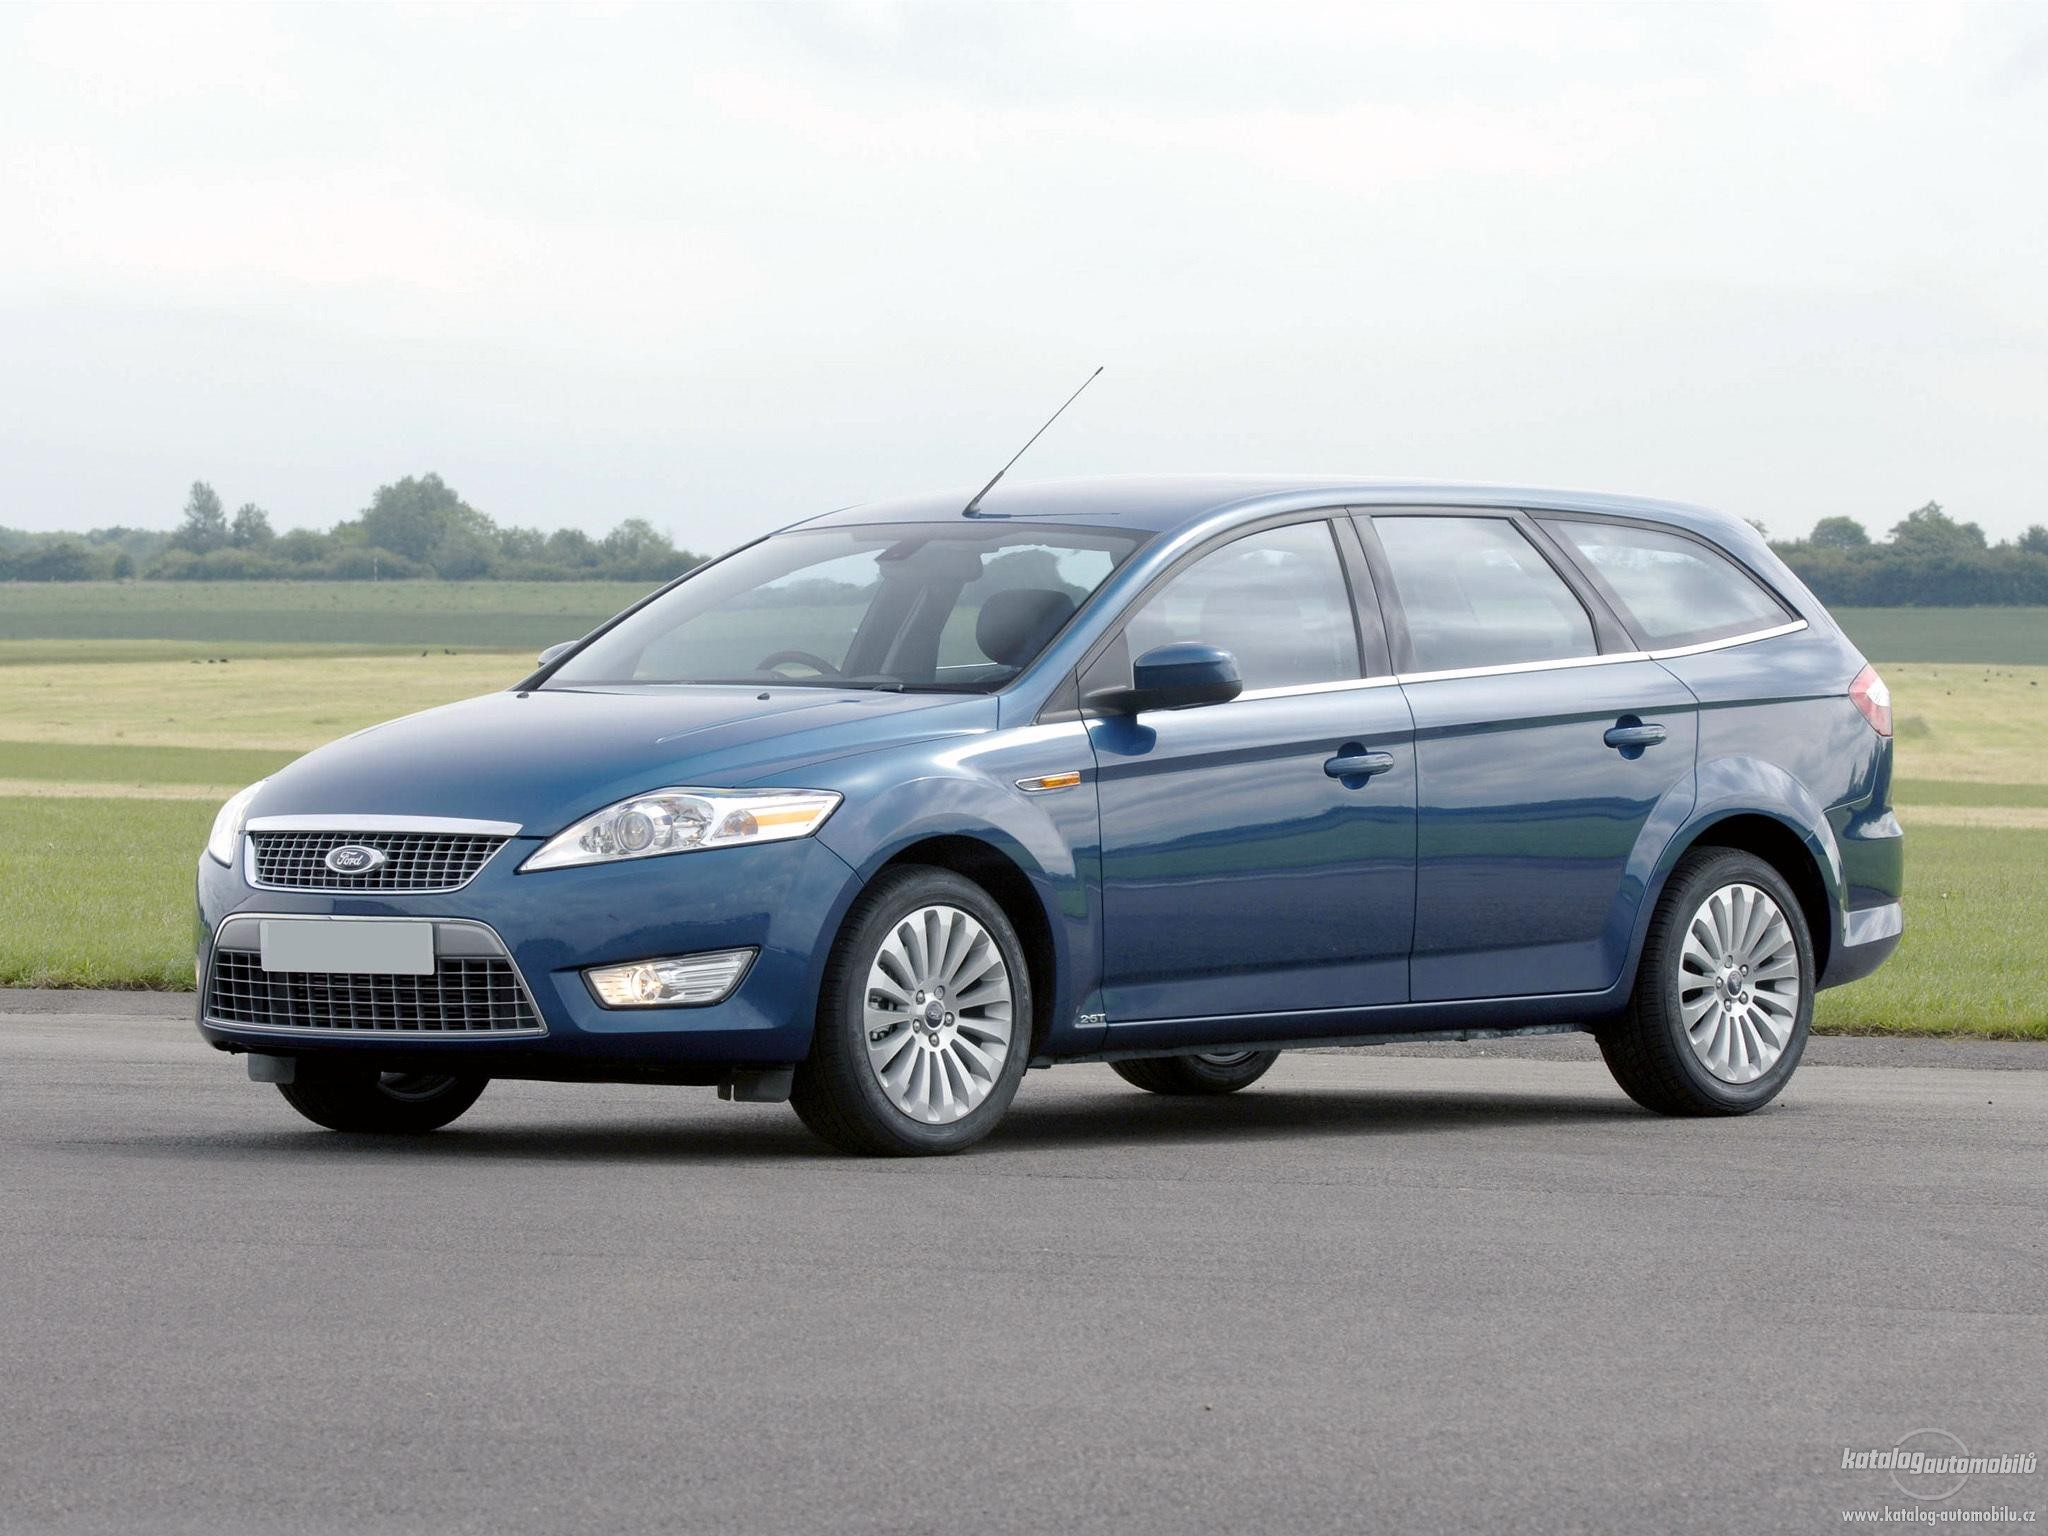 ford mondeo turnier 2.0-pic. 2